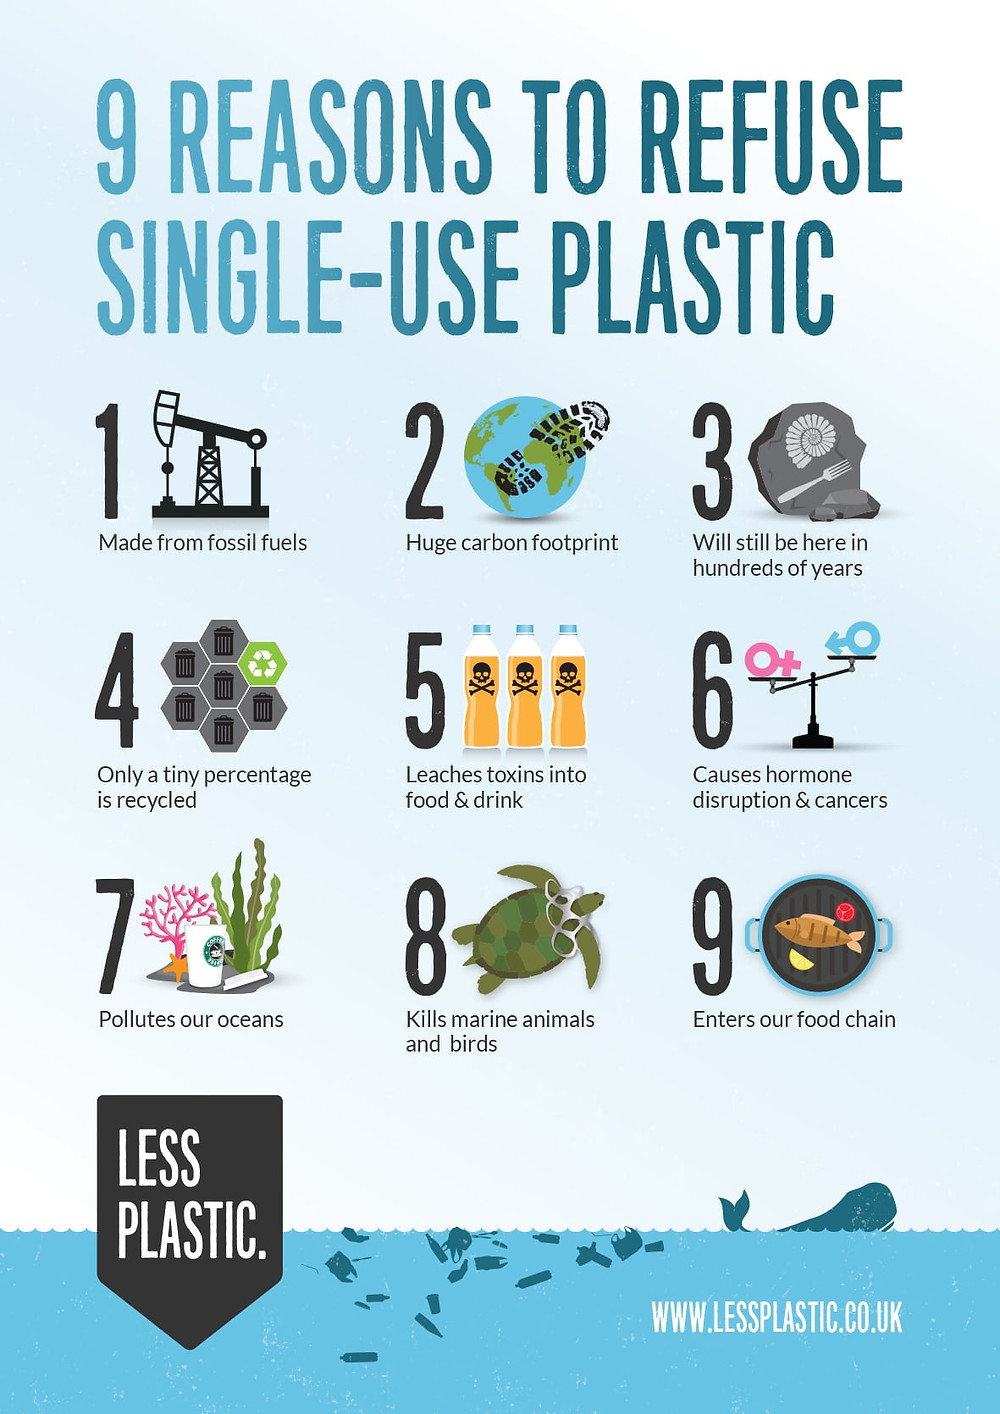 Reasons to refuse single-use plastic